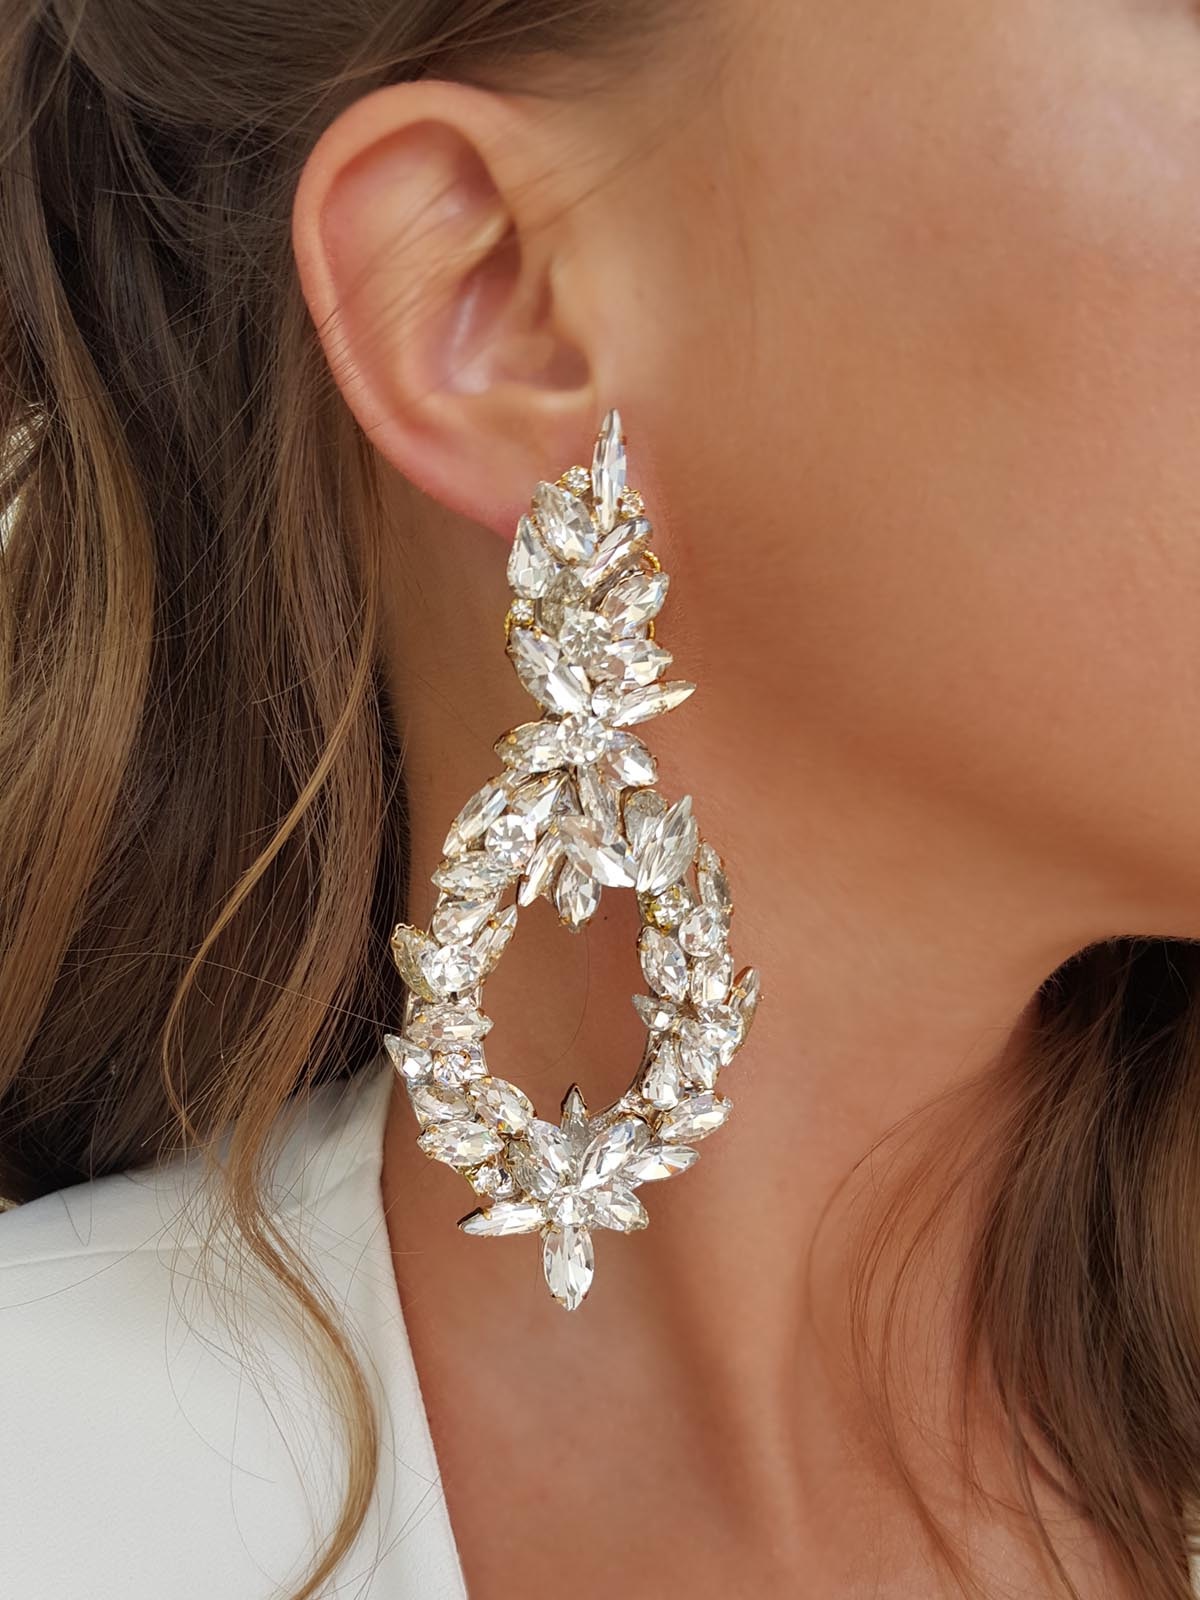 Earrings Coctail 186a